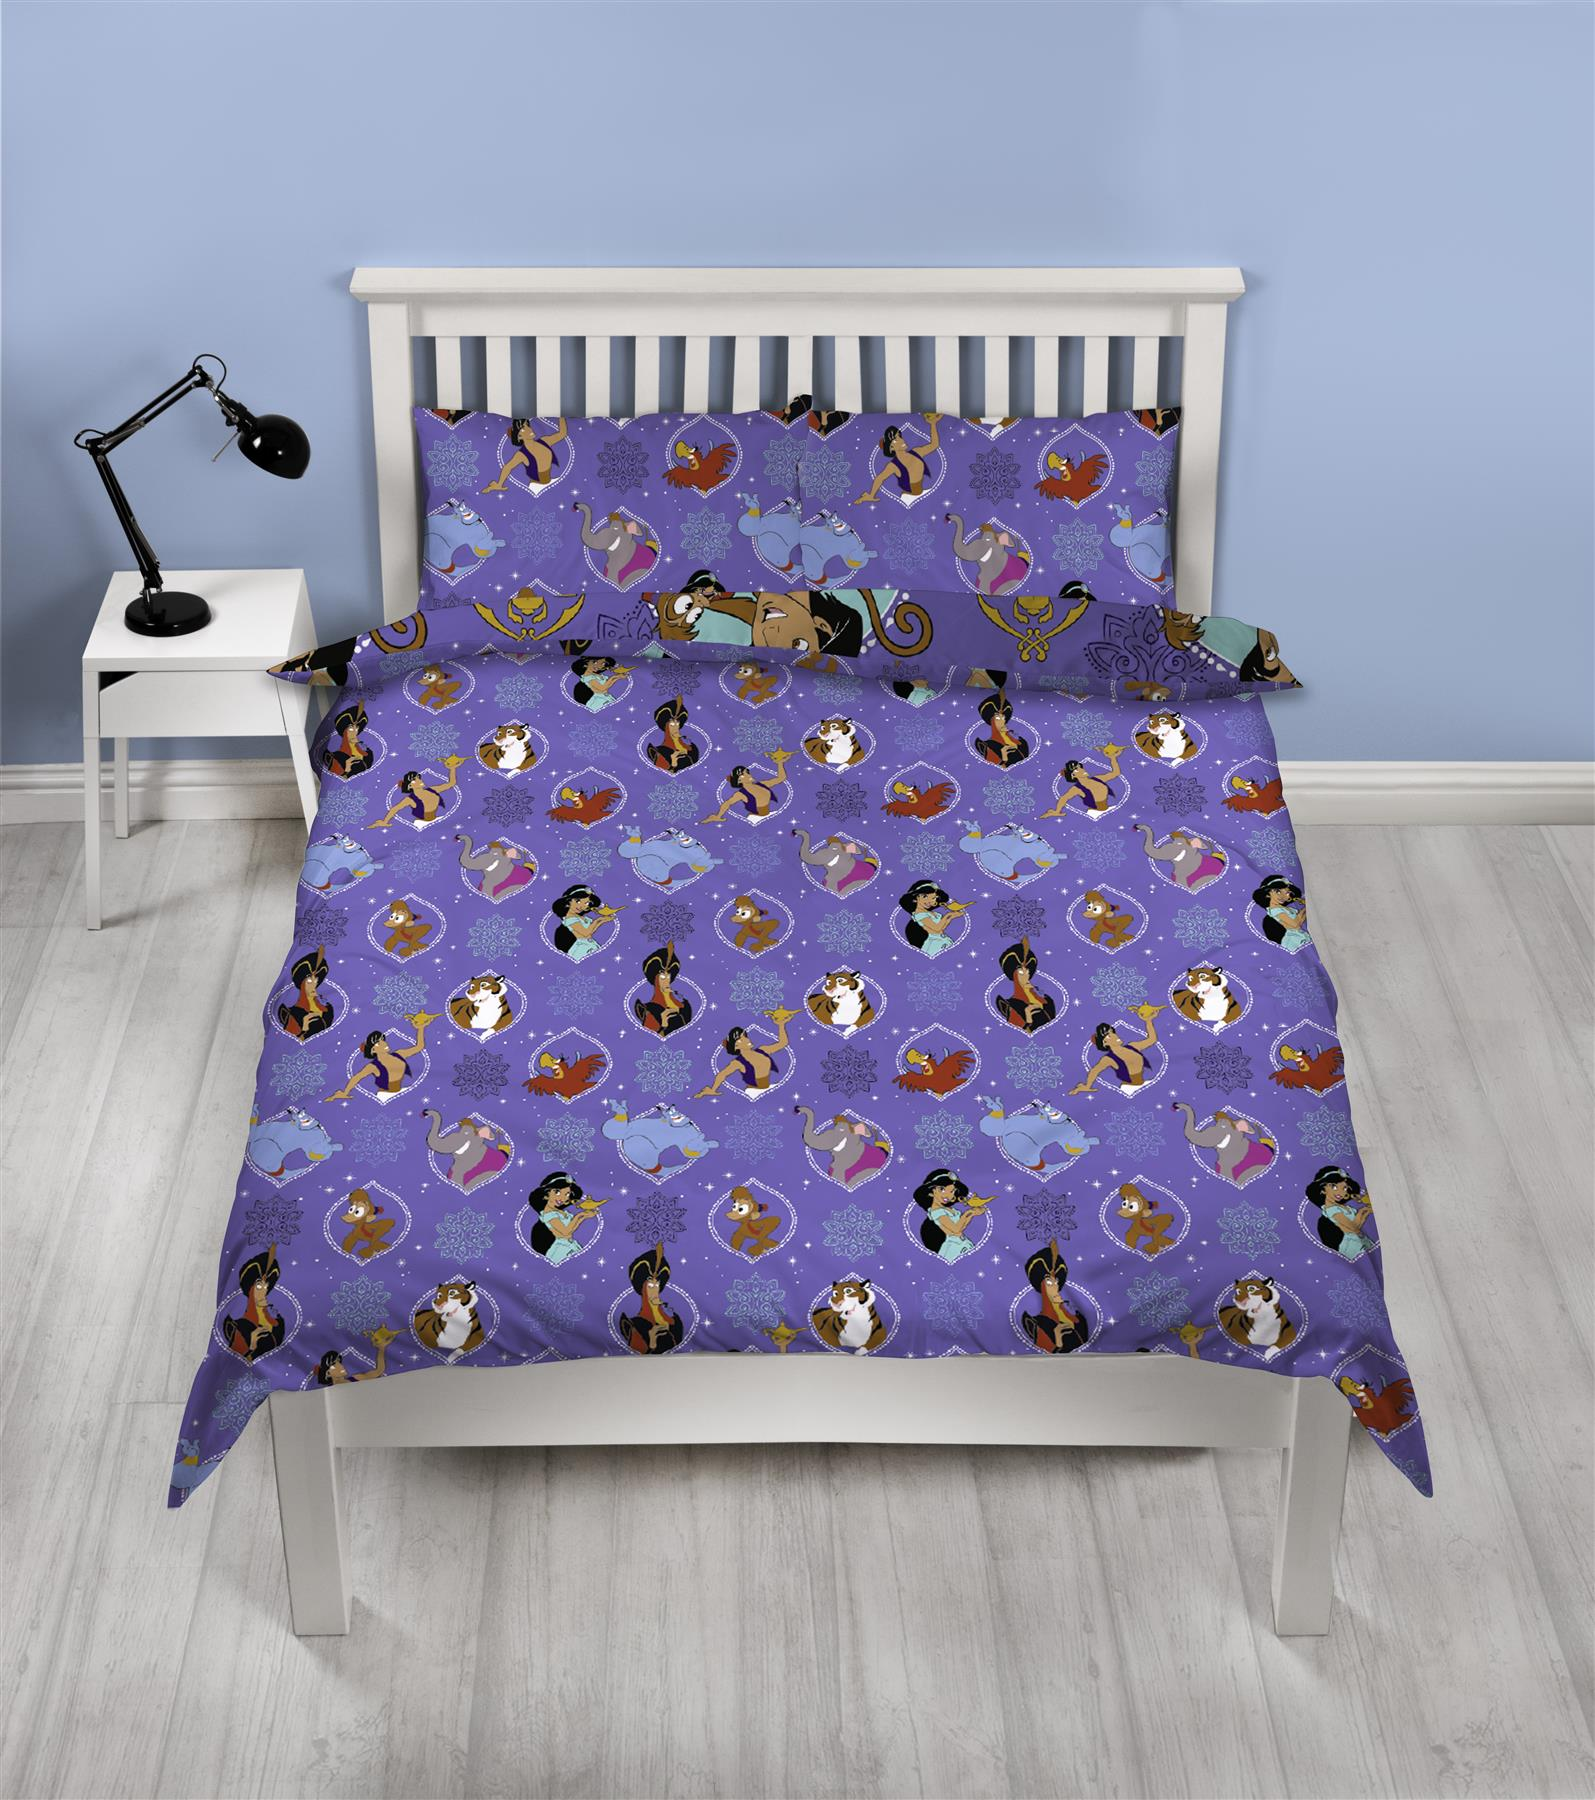 Official-Disney-Aladdin-Licensed-Duvet-Covers-Single-Double-Bedding-Genie thumbnail 10